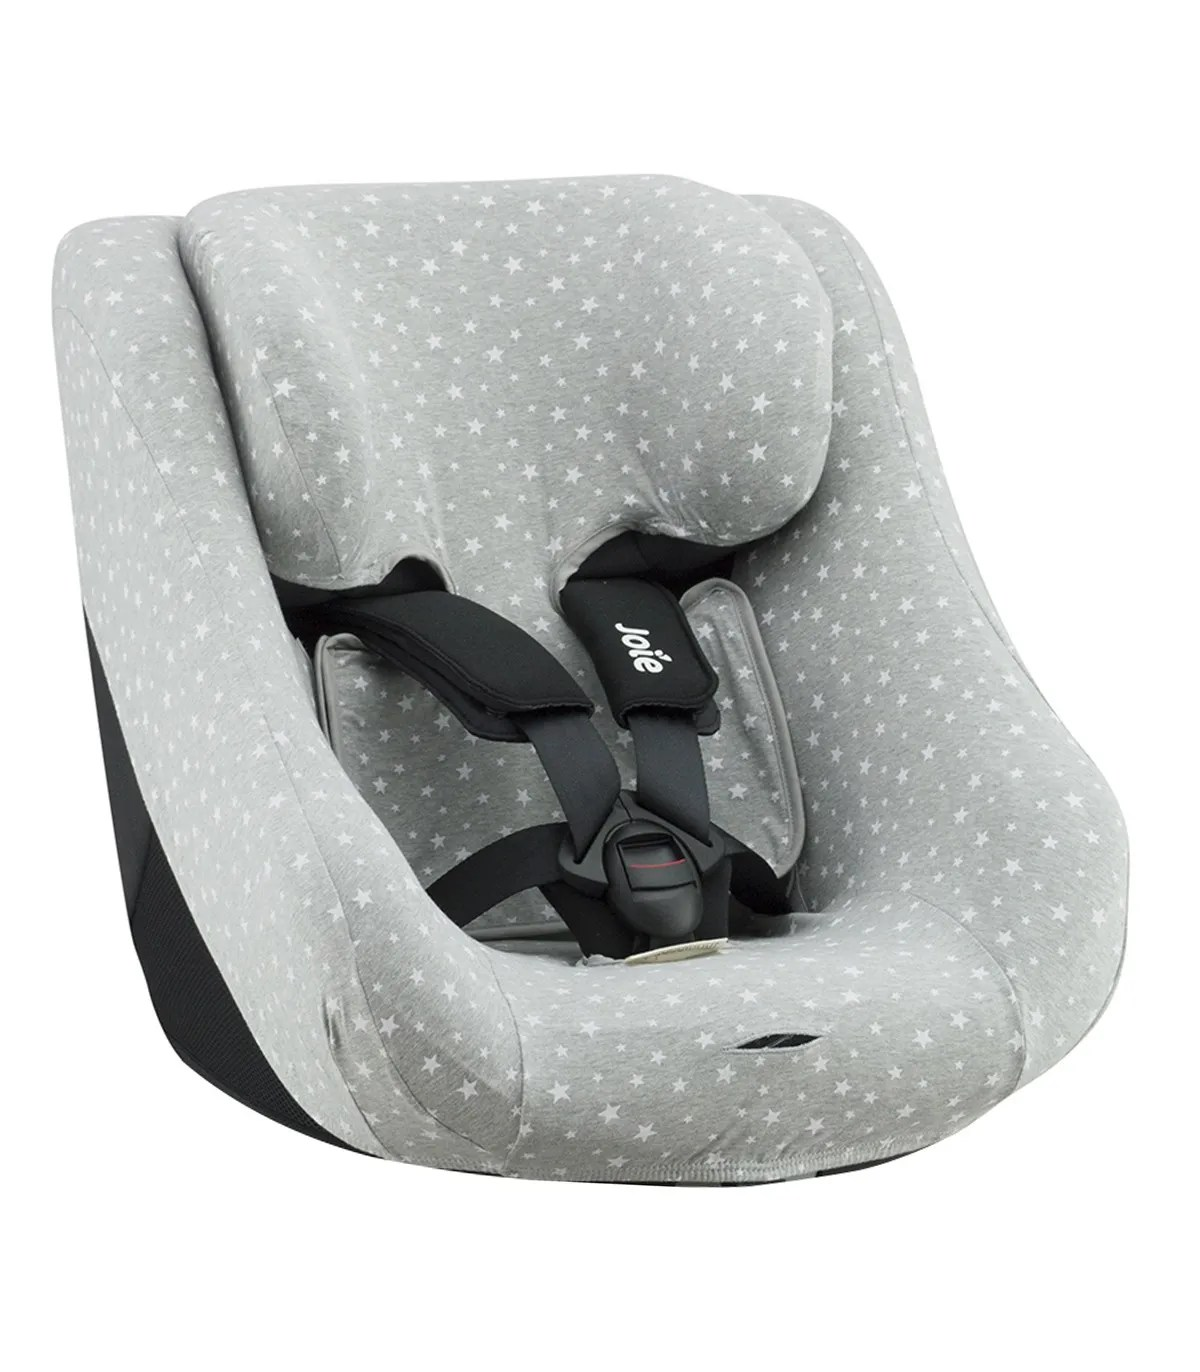 Joie Baby Head Office Joie Spin 360 Chair Cover Janabebé